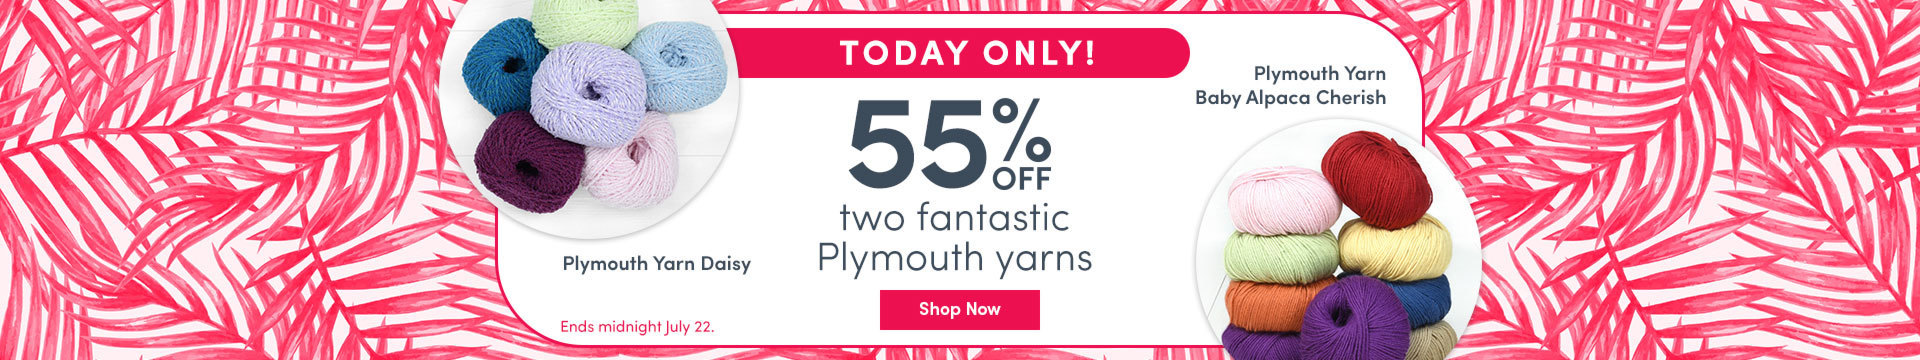 LK Marketing NA - Daily Deal Plymouth